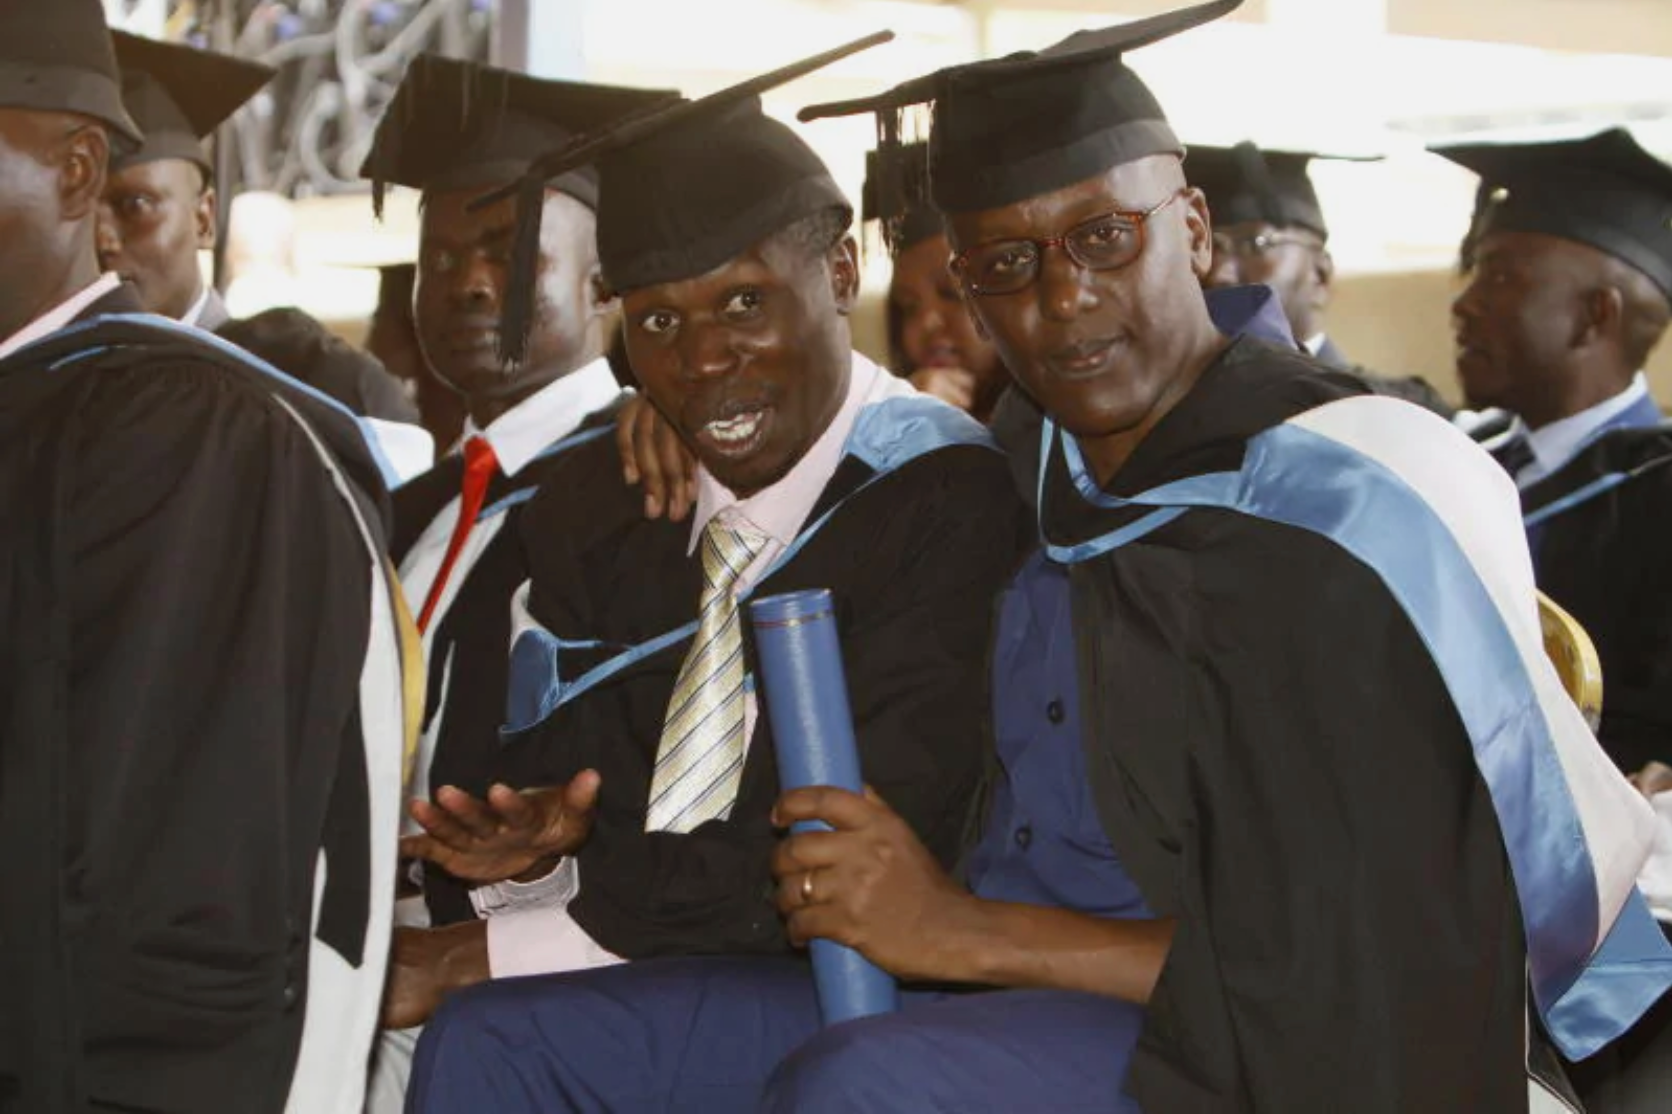 Tuko – Kamiti Prison: 10 inmates graduate with law degrees